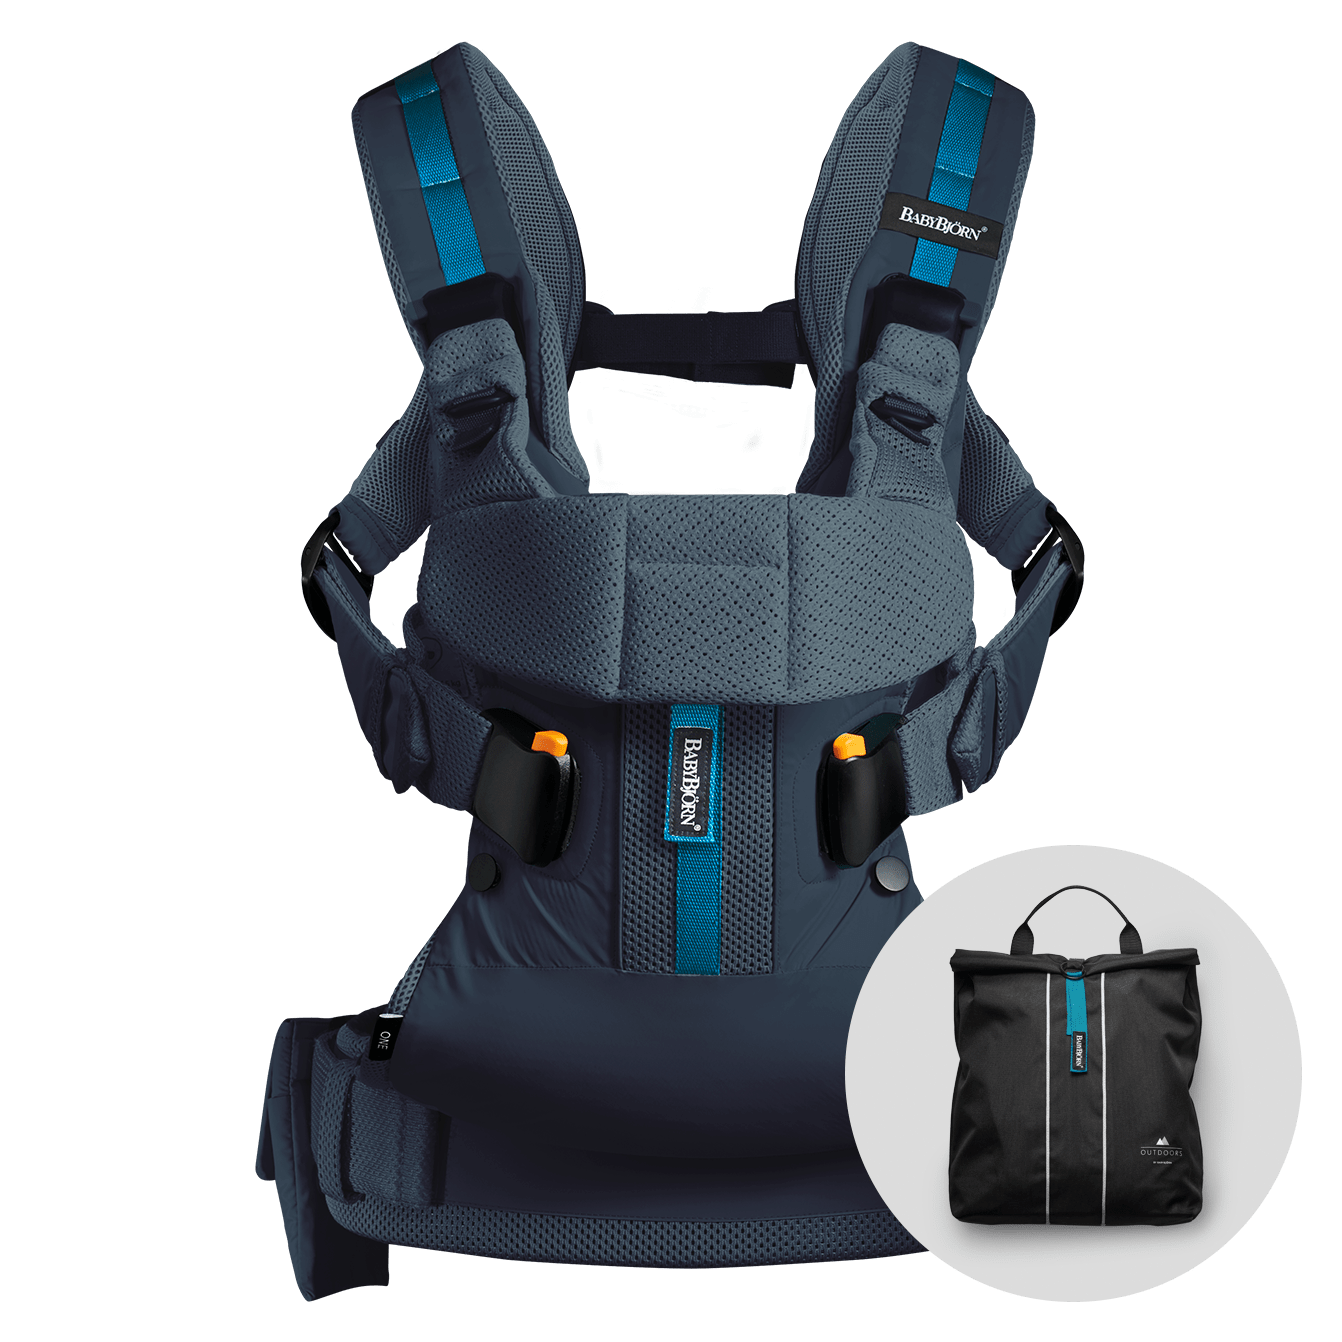 babybj rn baby carrier one outdoors in dark blue perfect for an active life